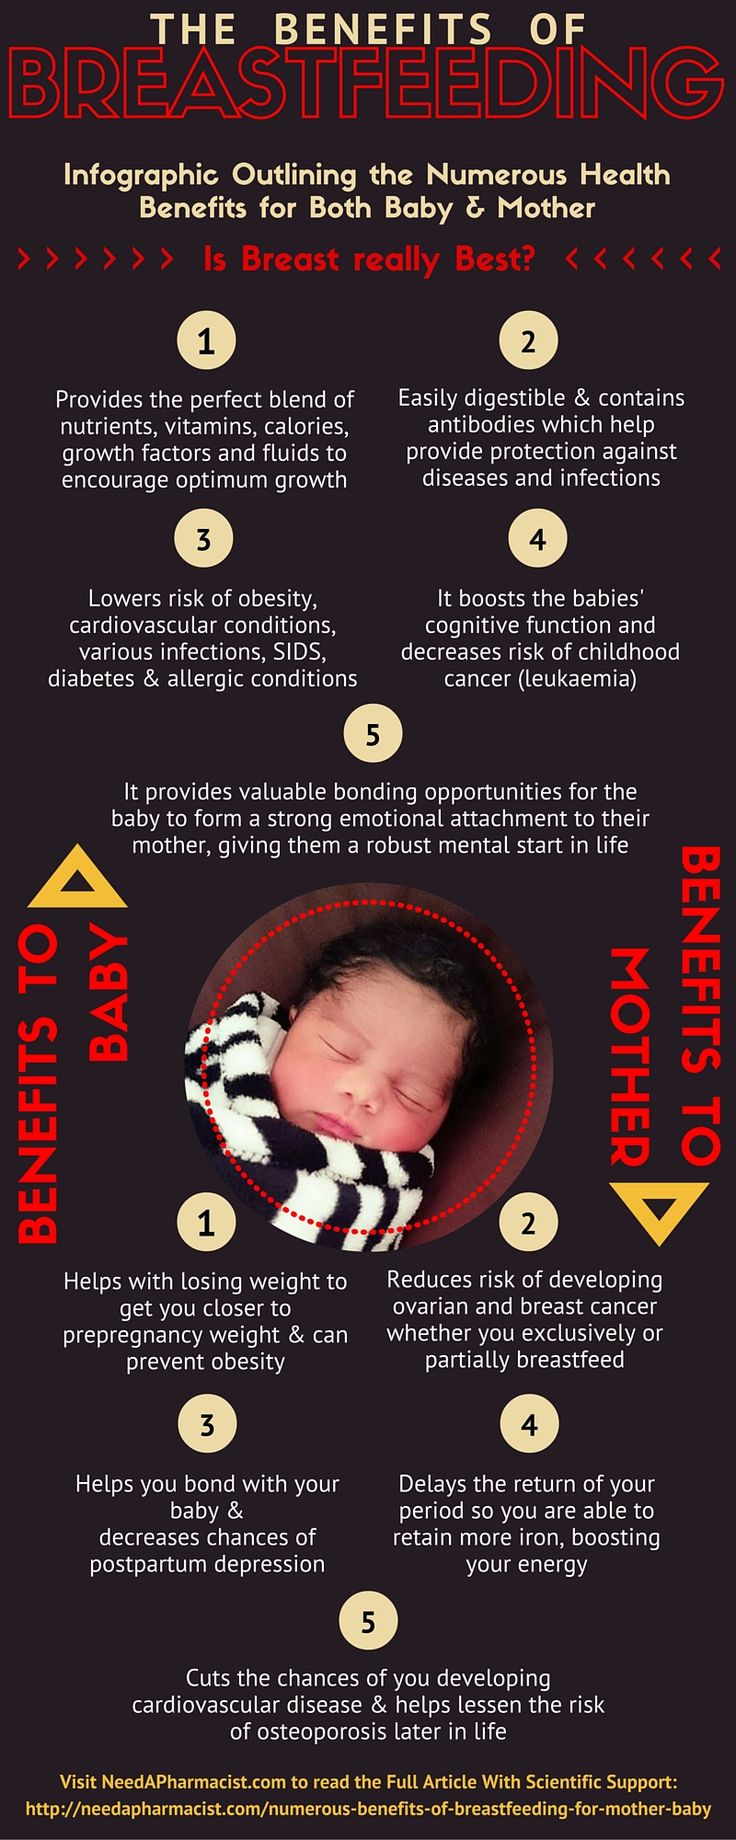 #Infographic outlining the numerous health benefits of #breastfeeding both for the mother and baby.